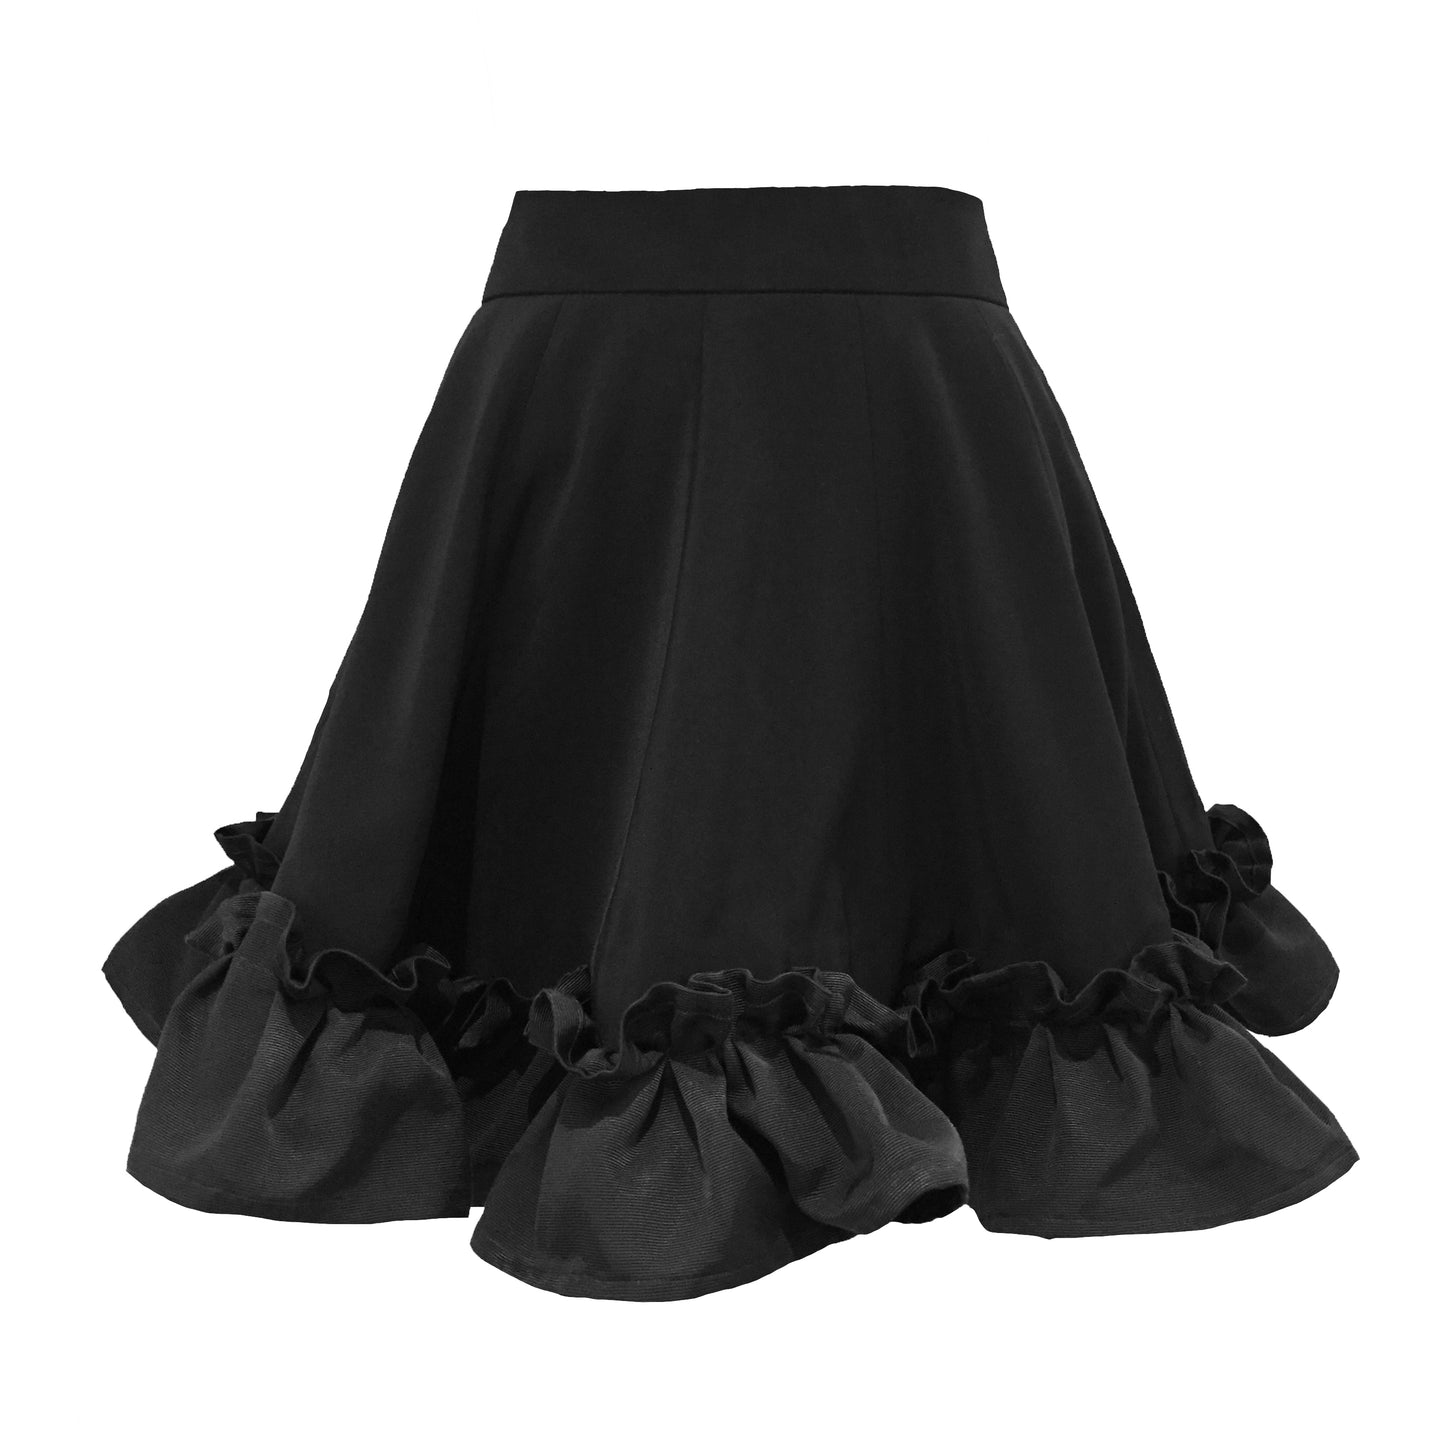 The Cleopatra Frill Mini Skirt